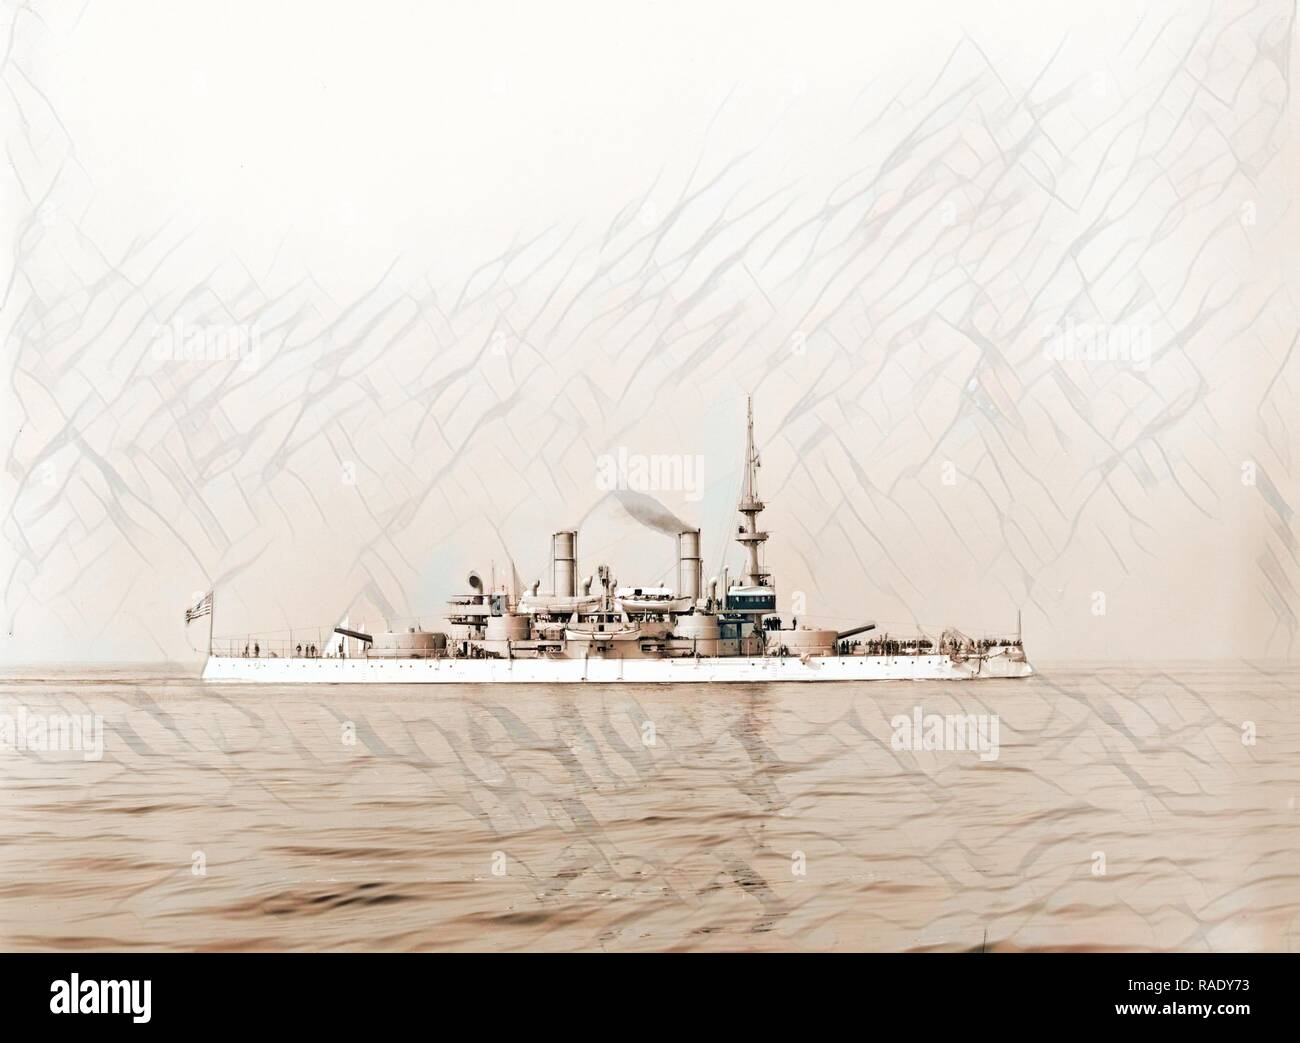 U.S.S. Indiana, Indiana (Battleship), Battleships, American, 189. Reimagined by Gibon. Classic art with a modern reimagined - Stock Image